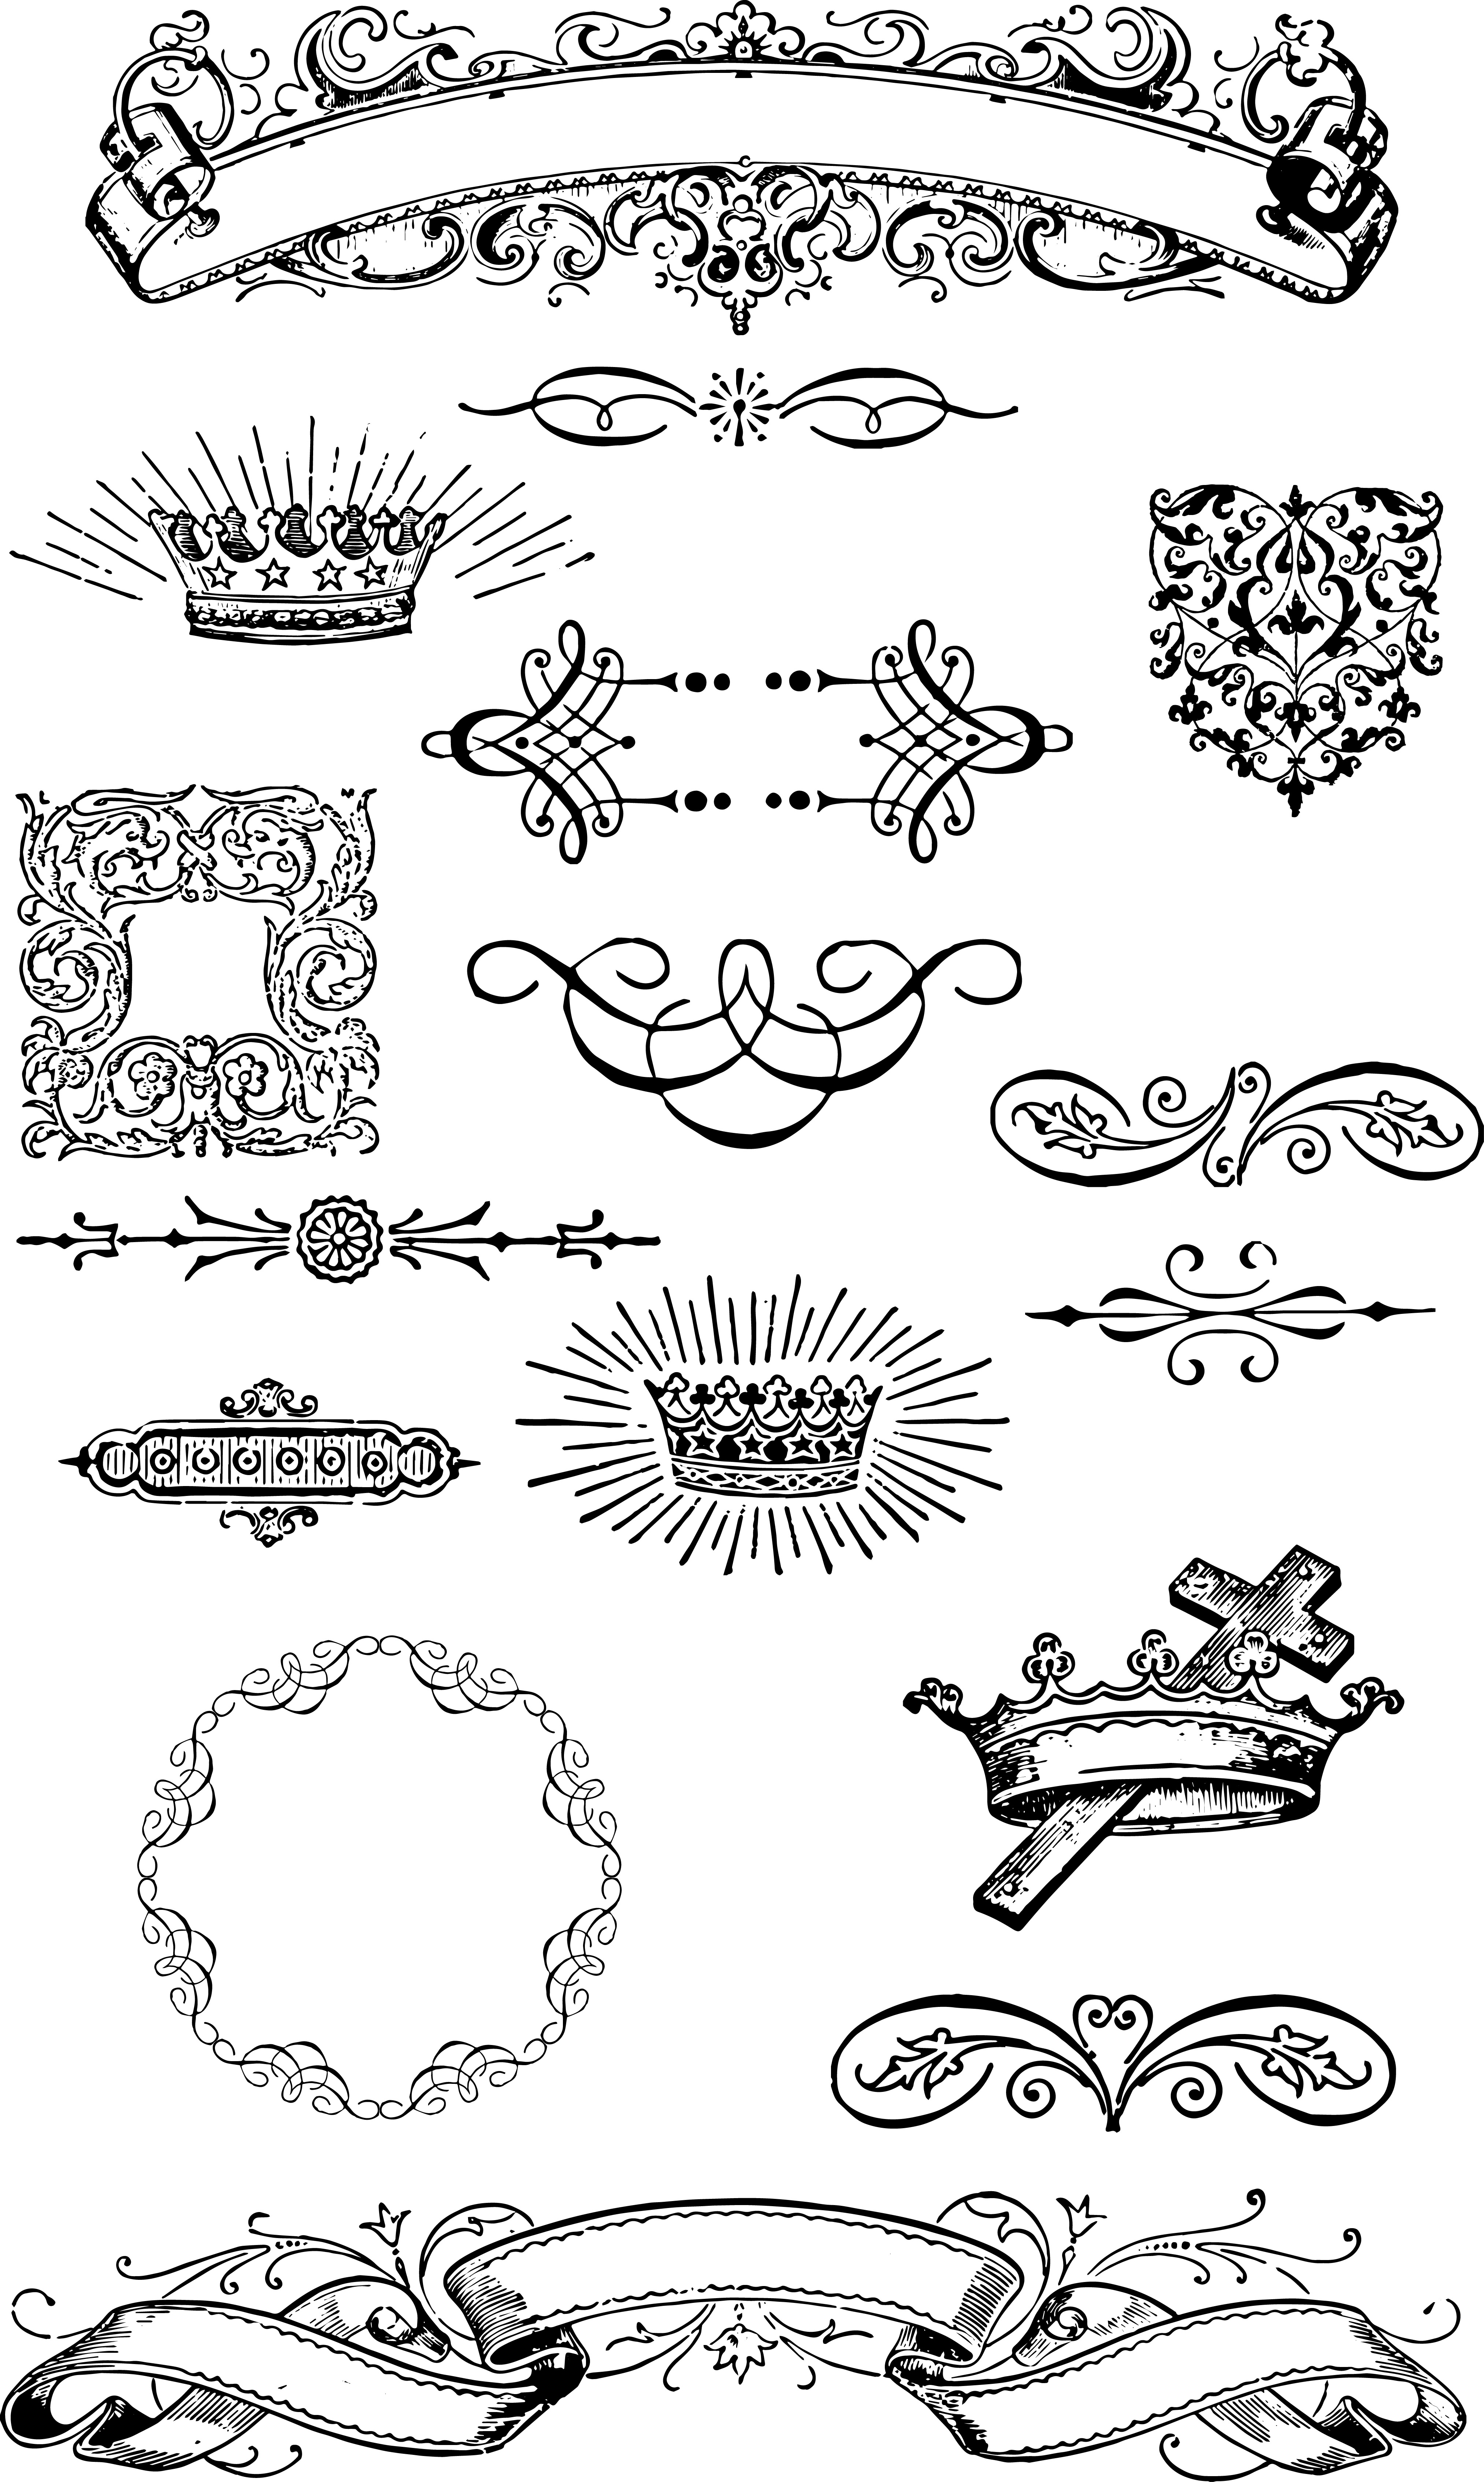 Free vintage clipart for commercial use jpg transparent stock Free vintage clipart for commercial use - ClipartFest jpg transparent stock